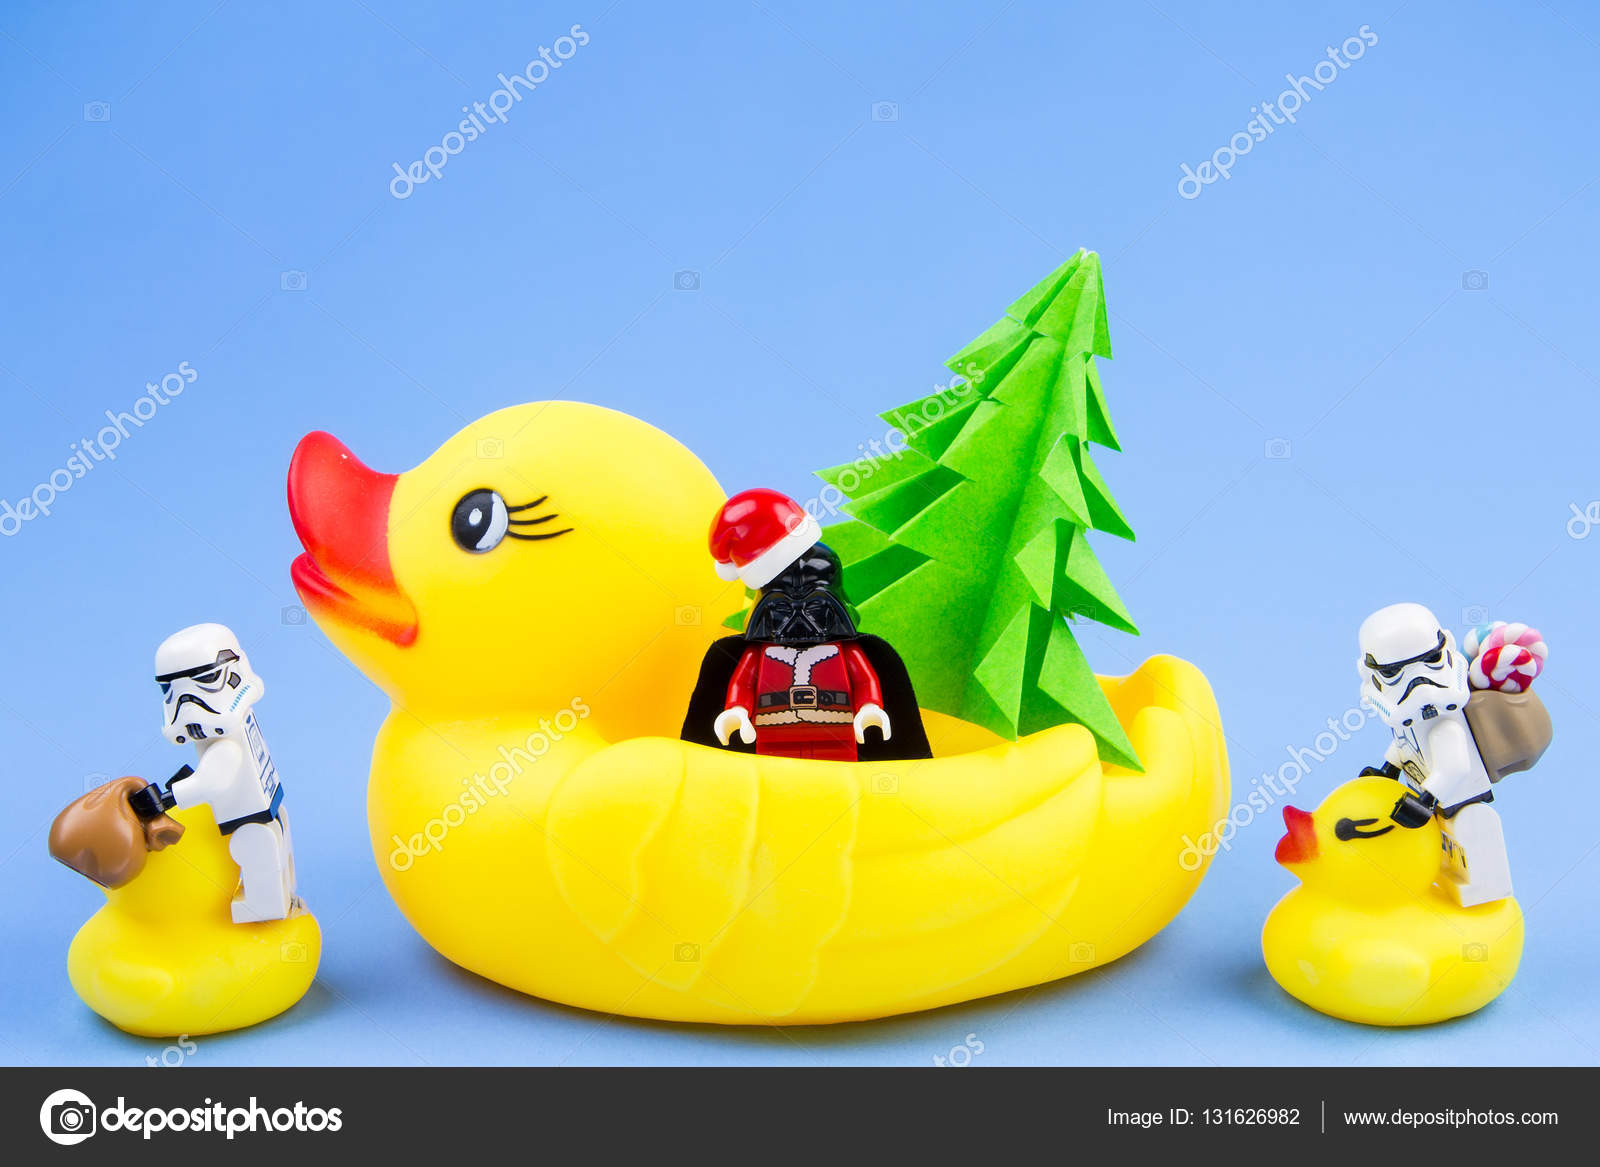 Darth vader rubber duck - photo#48